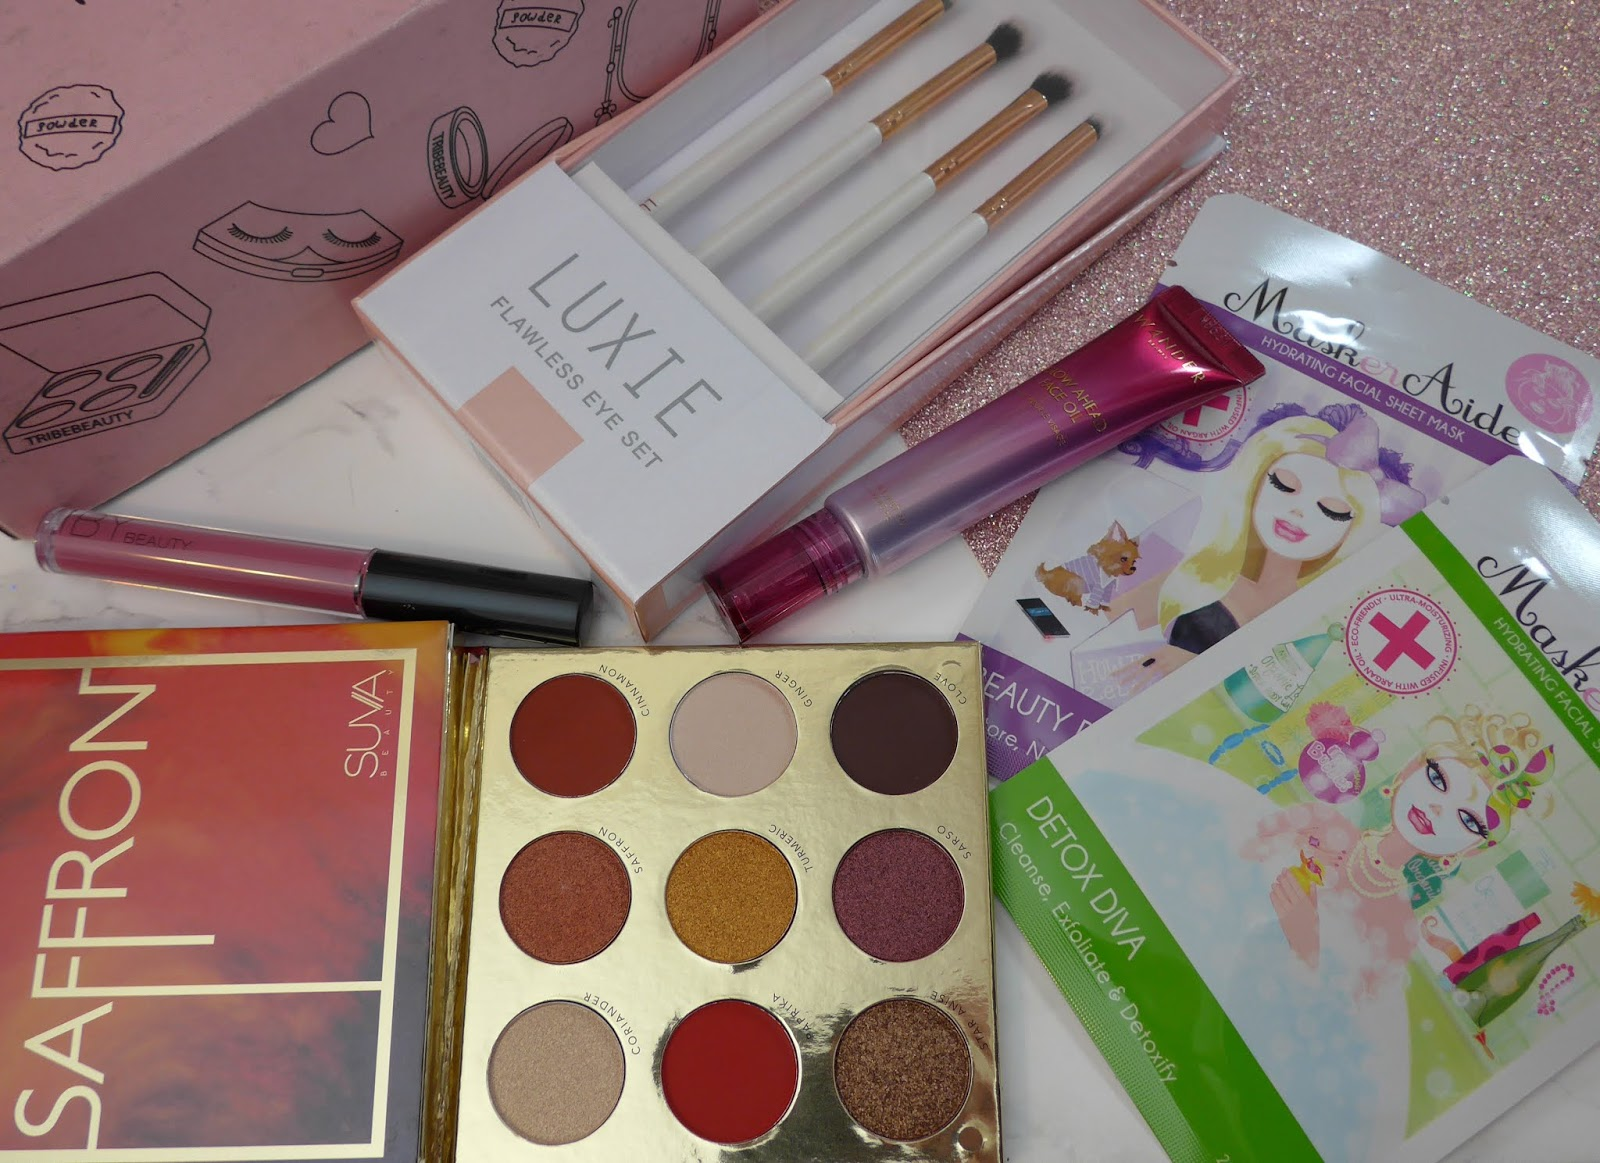 February 2019 Tribe Beauty Box - Unboxing and Review